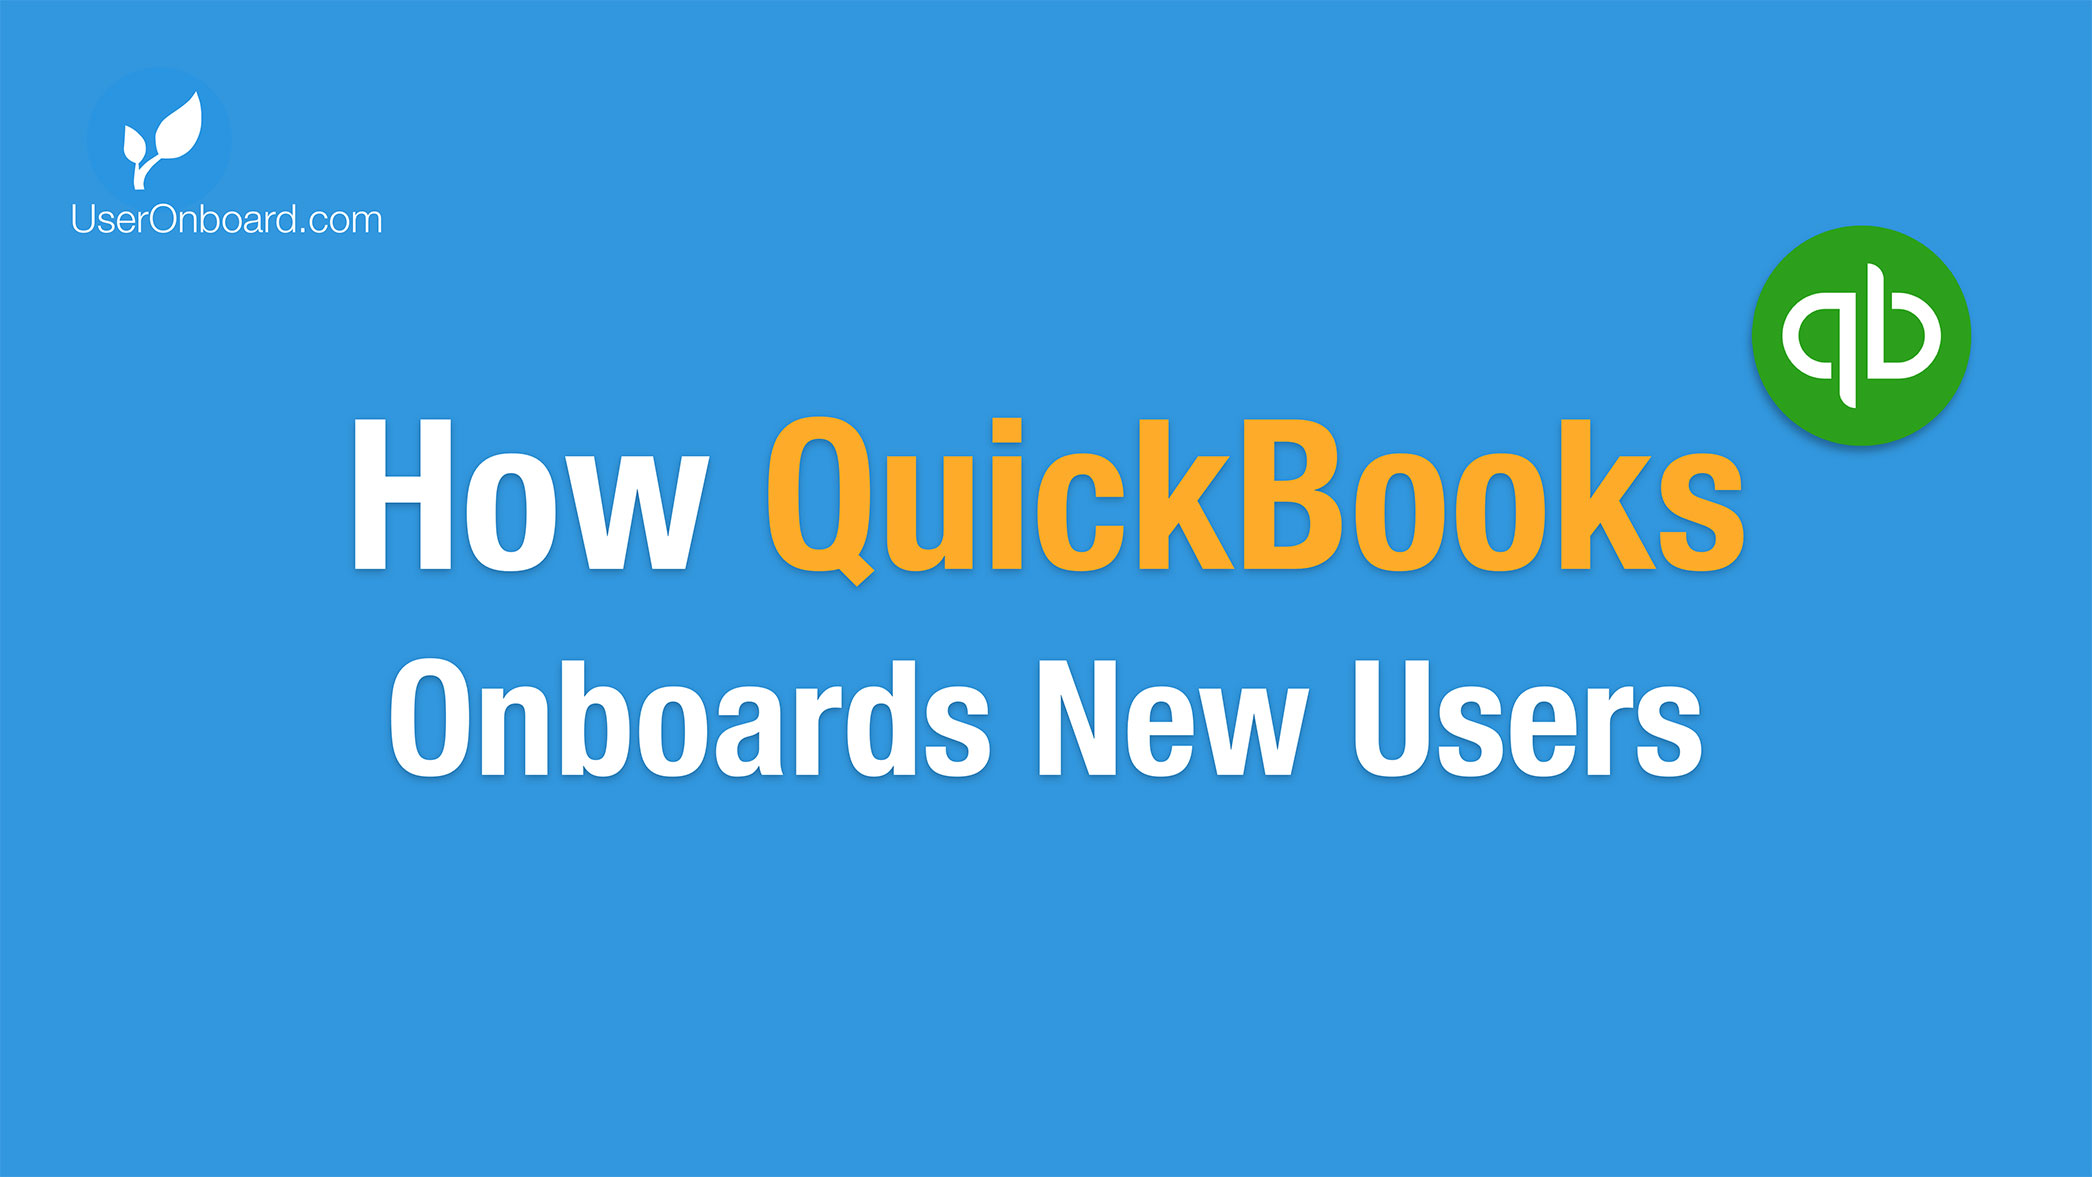 How QuickBooks Onboards New Users